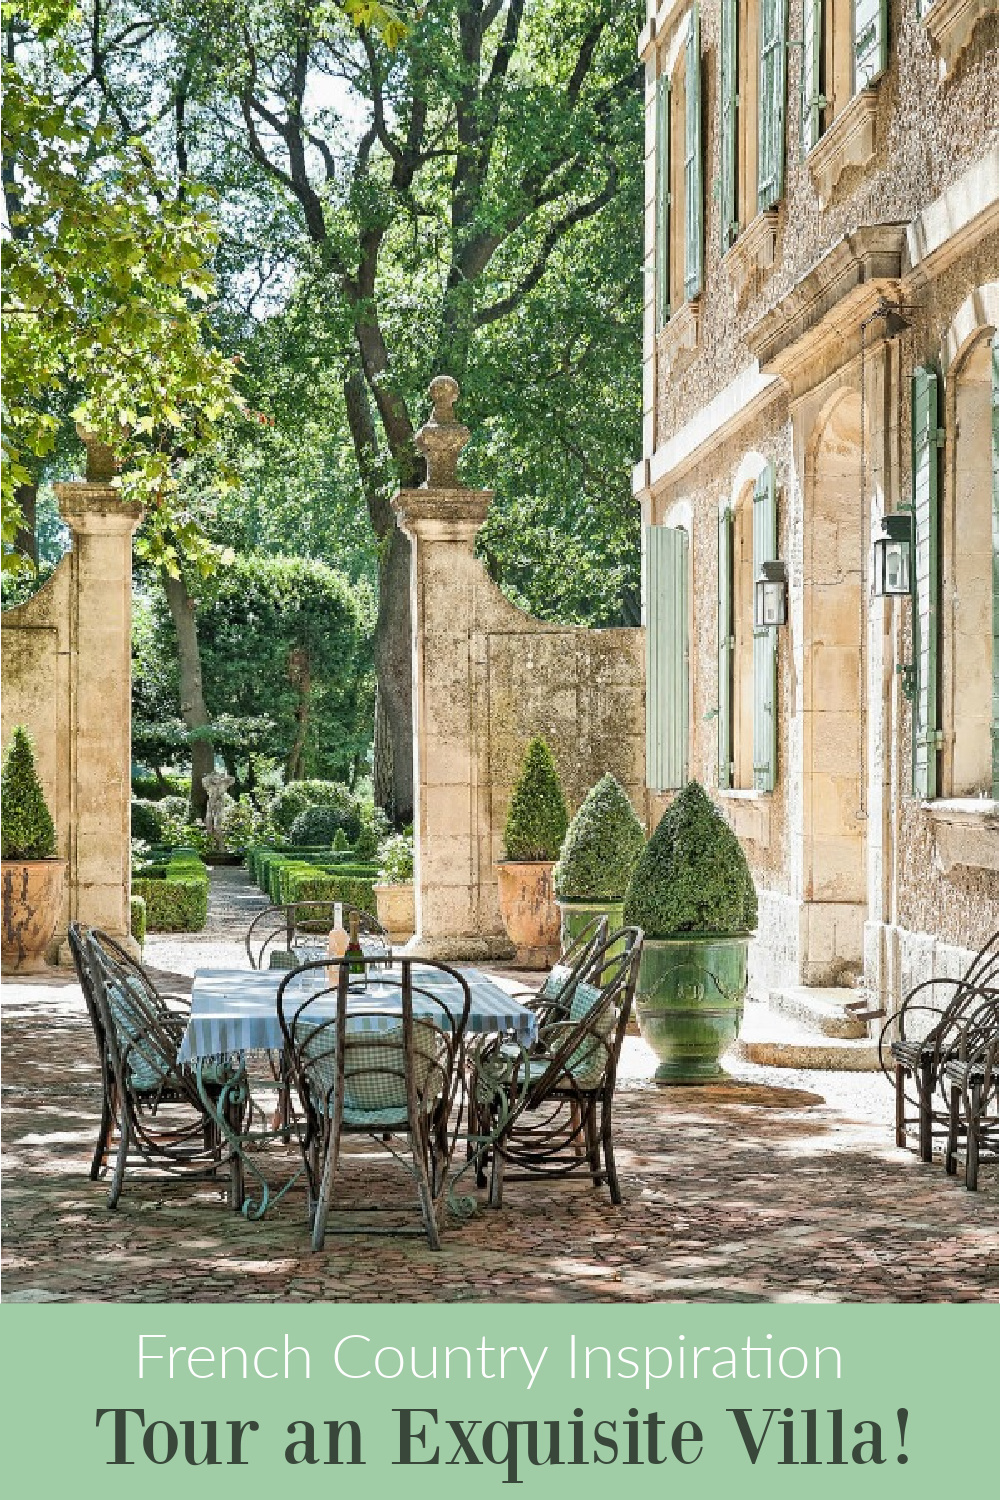 French Country Inspiration - Come tour an Exquisite Villa! #hellolovelystudio #frenchchateau #housetour #frenchcountry #interiordesign #frenchgardens